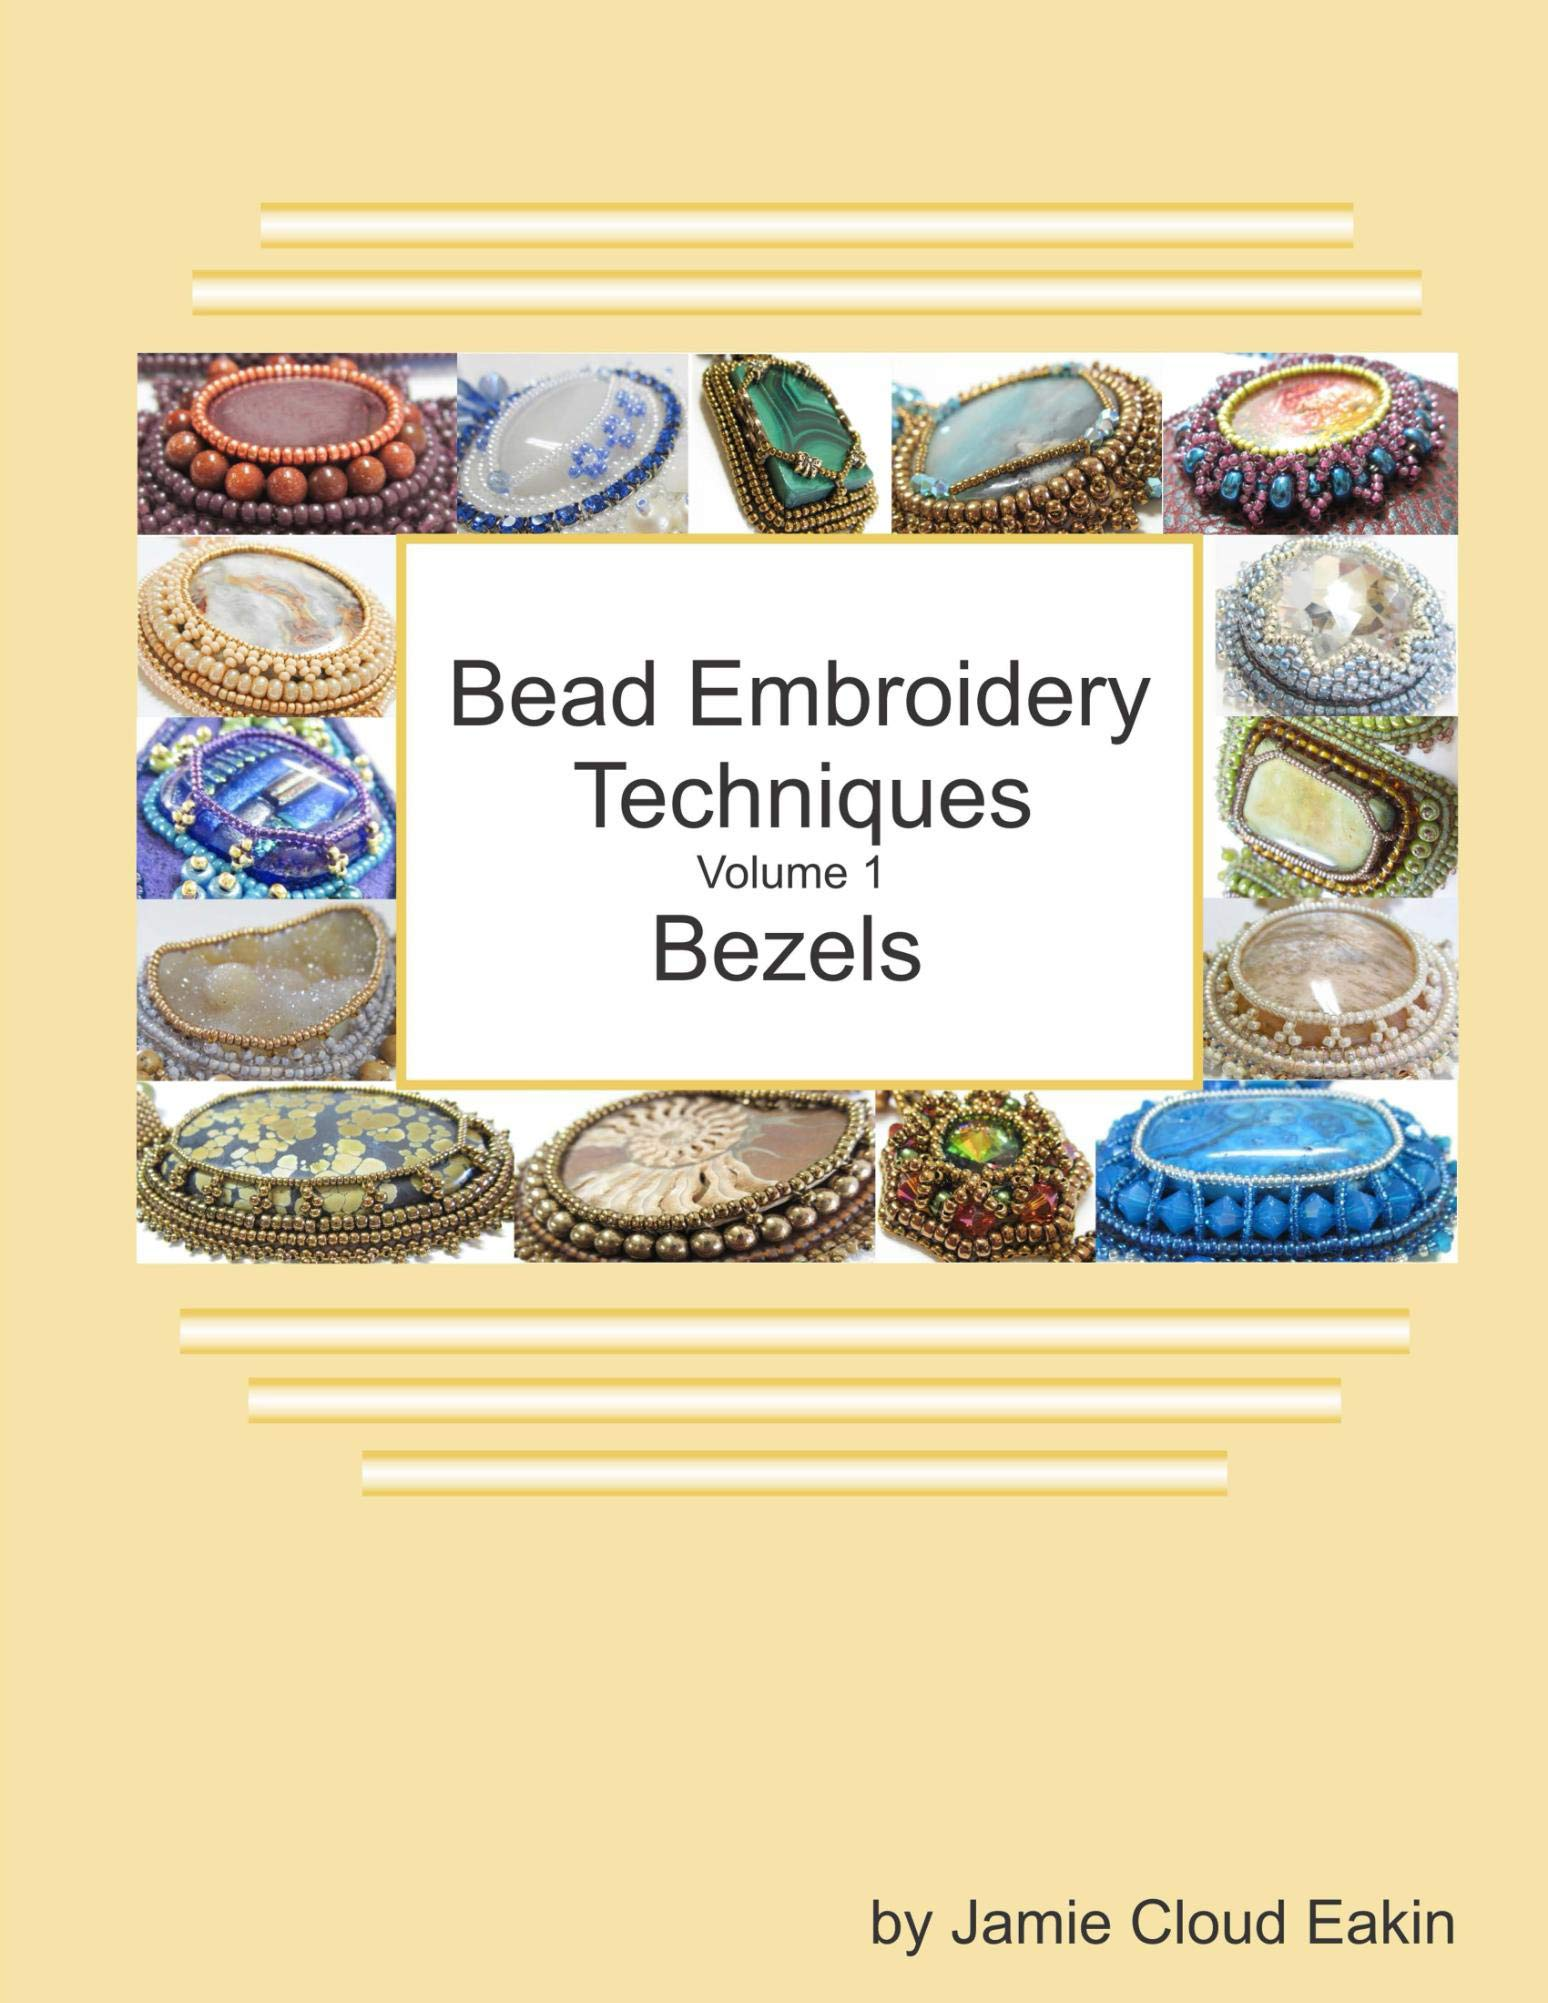 Bead Embroidery Techniques   Volume 1 Bezels  English Edition